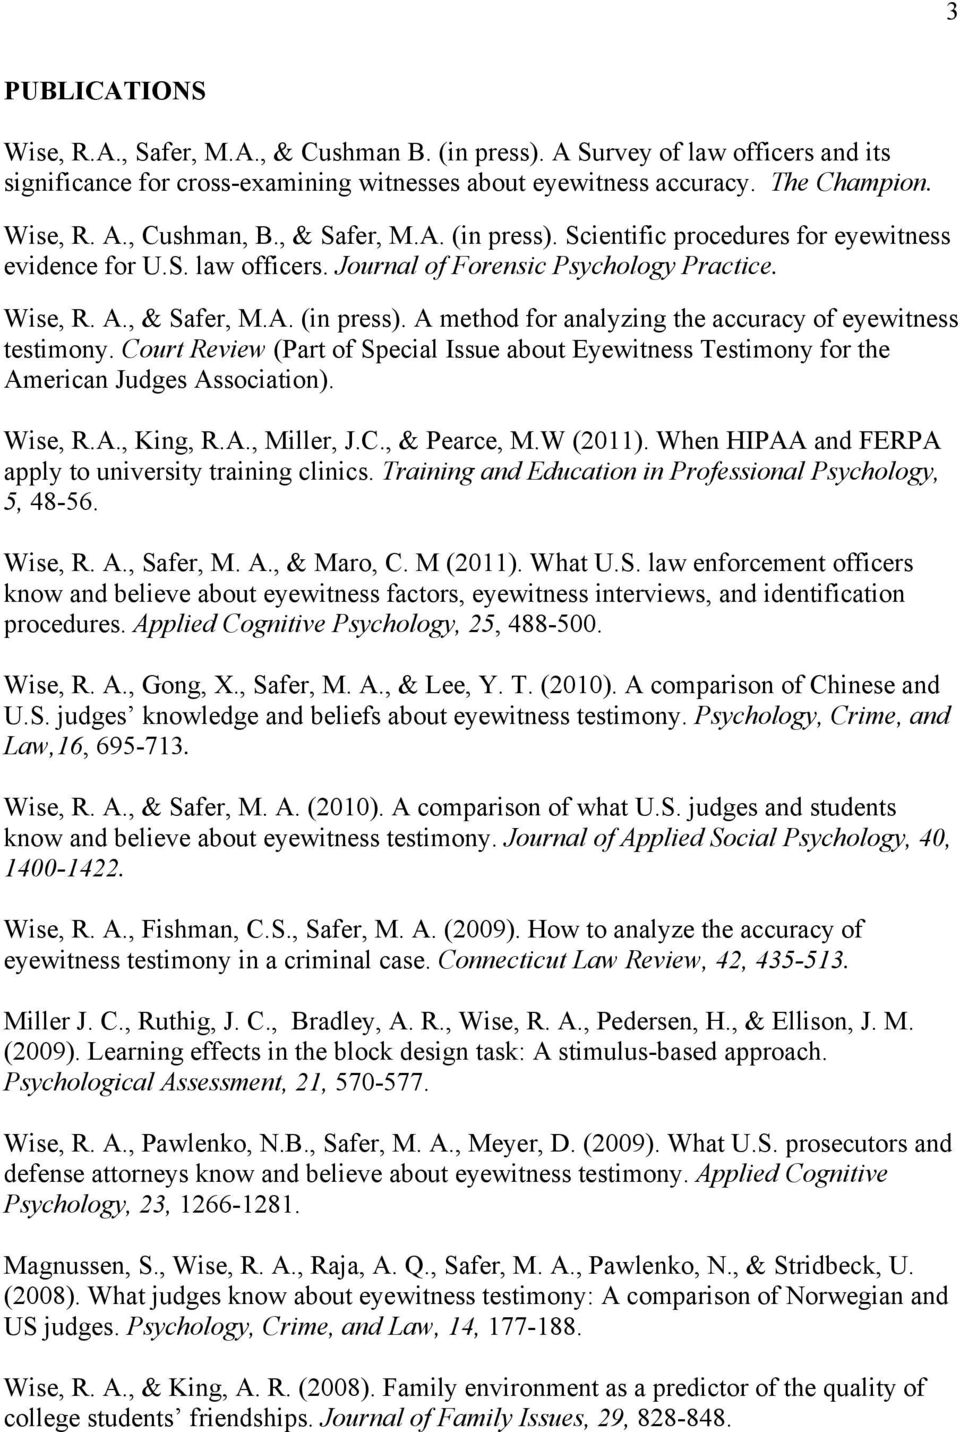 Court Review (Part of Special Issue about Eyewitness Testimony for the American Judges Association). Wise, R.A., King, R.A., Miller, J.C., & Pearce, M.W (2011).